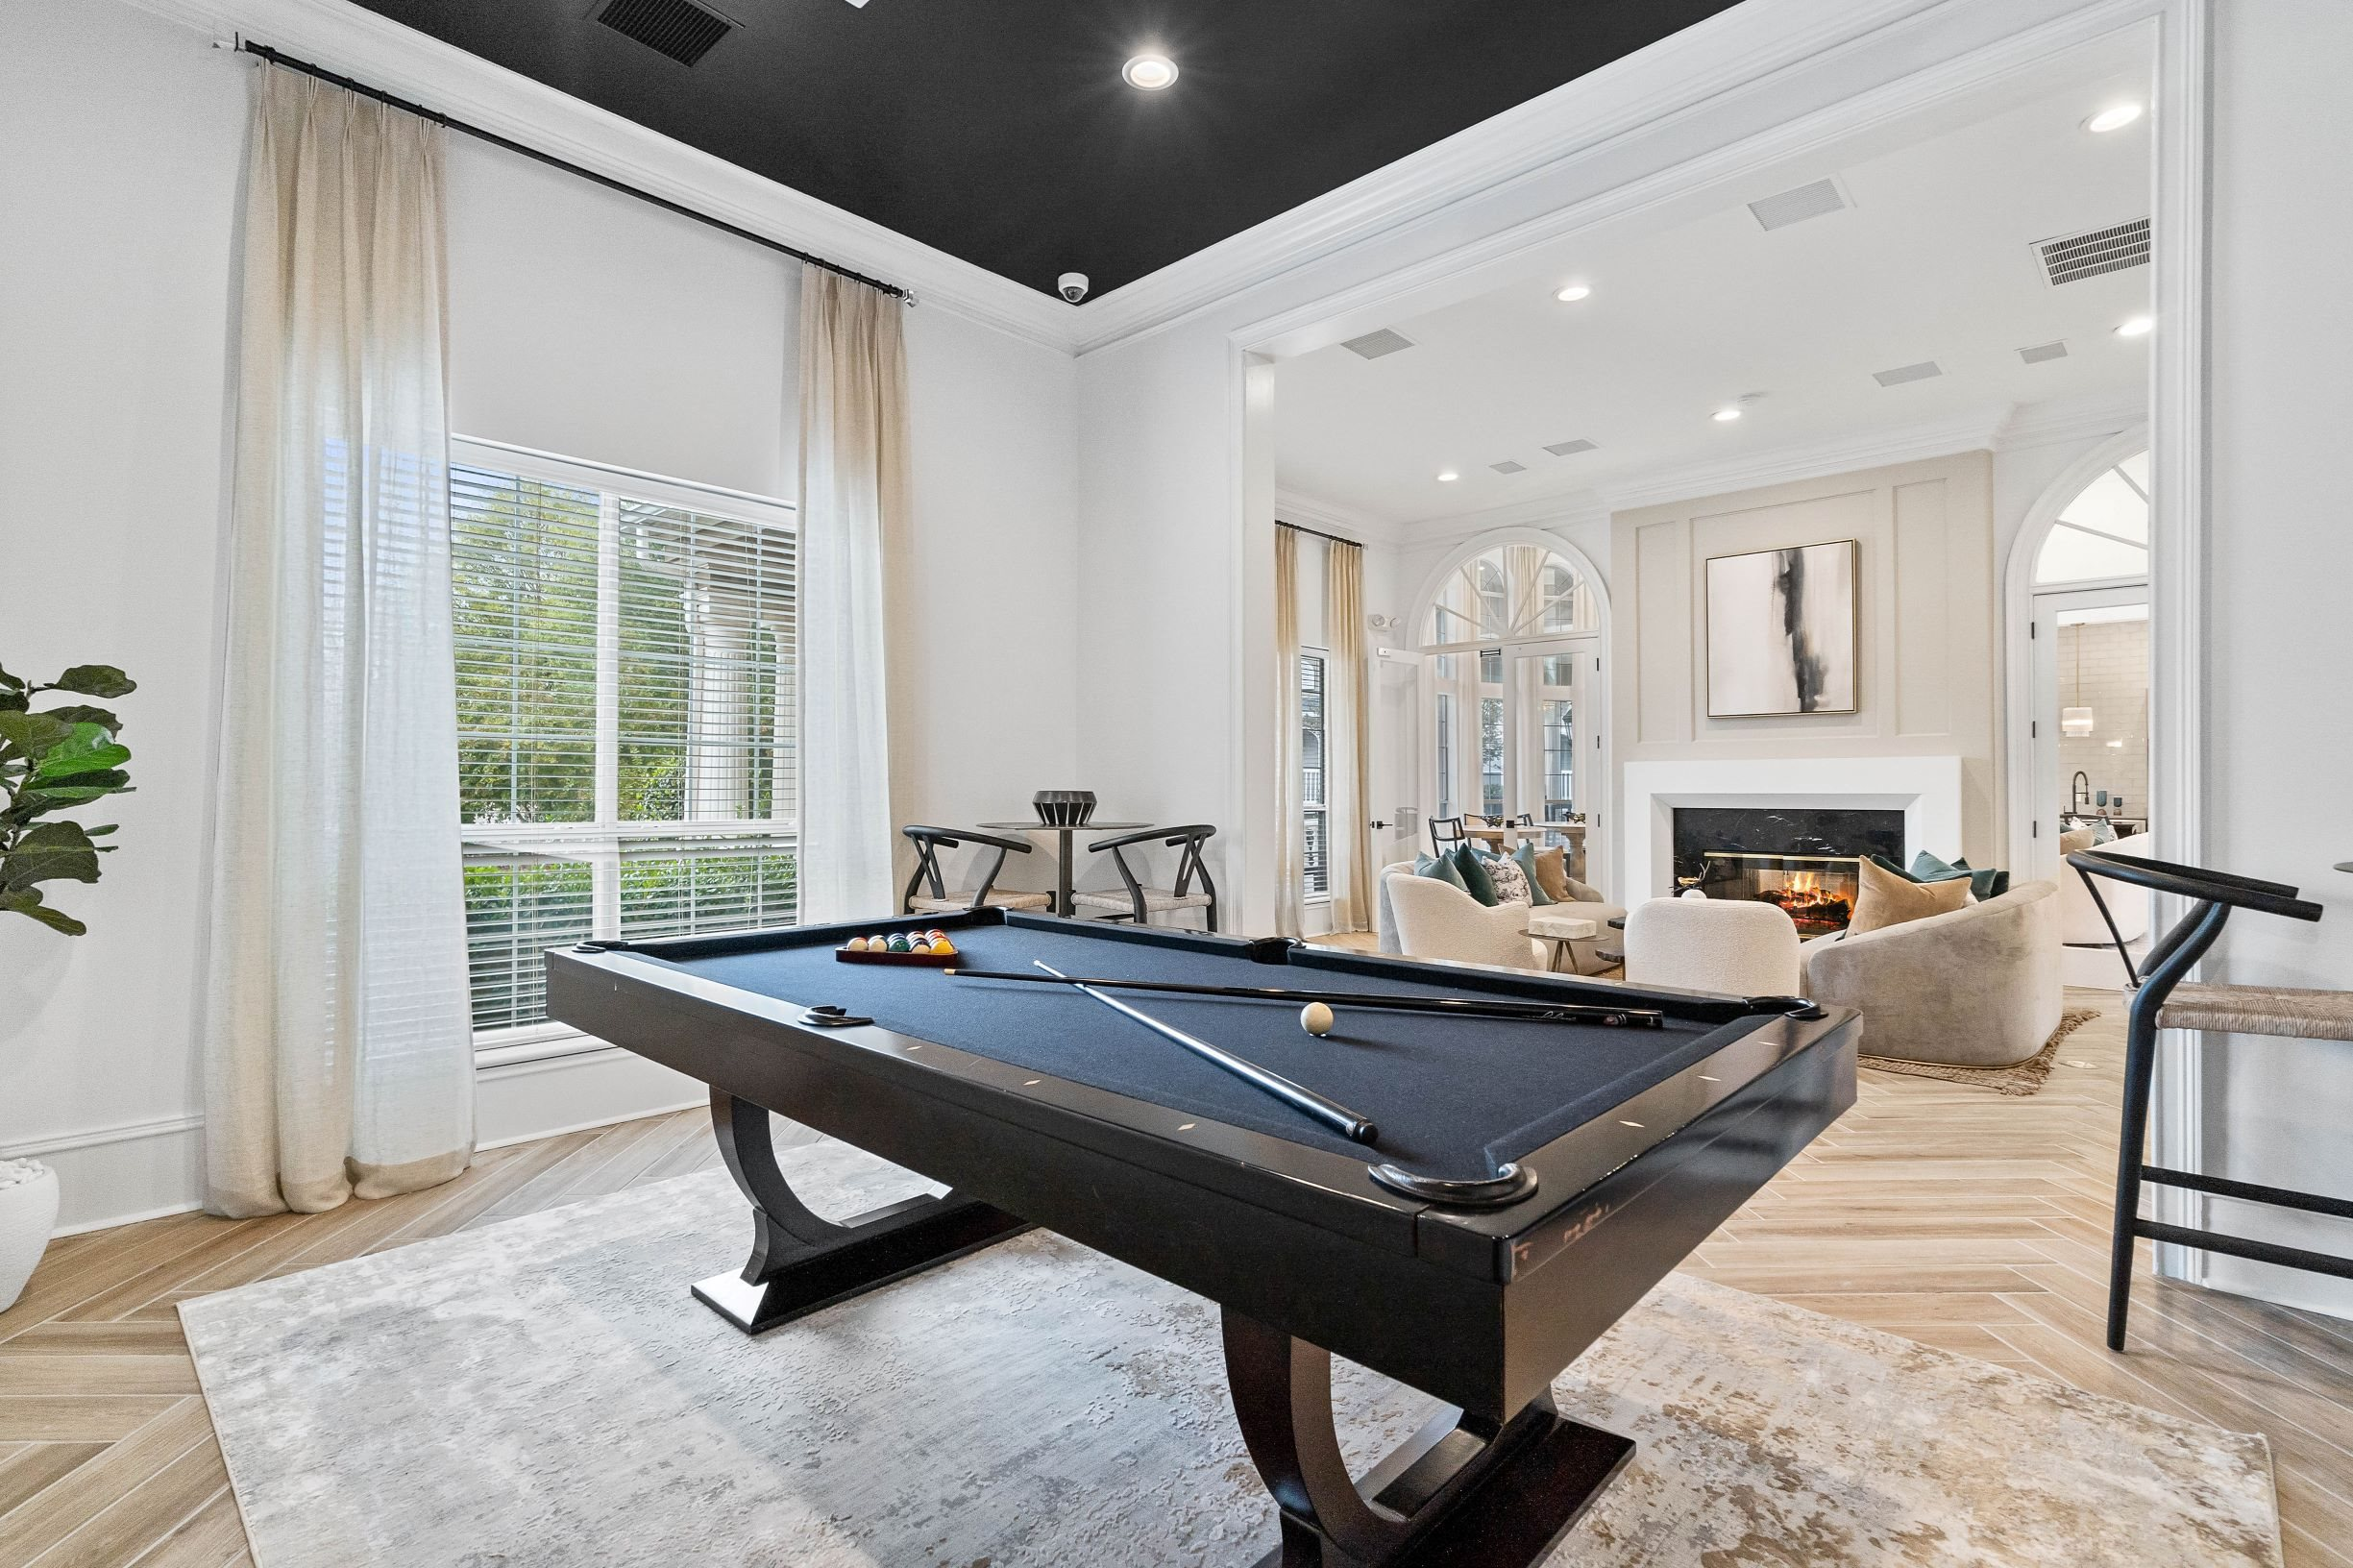 Billiards Room at Hawthorne at the Carlyle in Greenville, SC